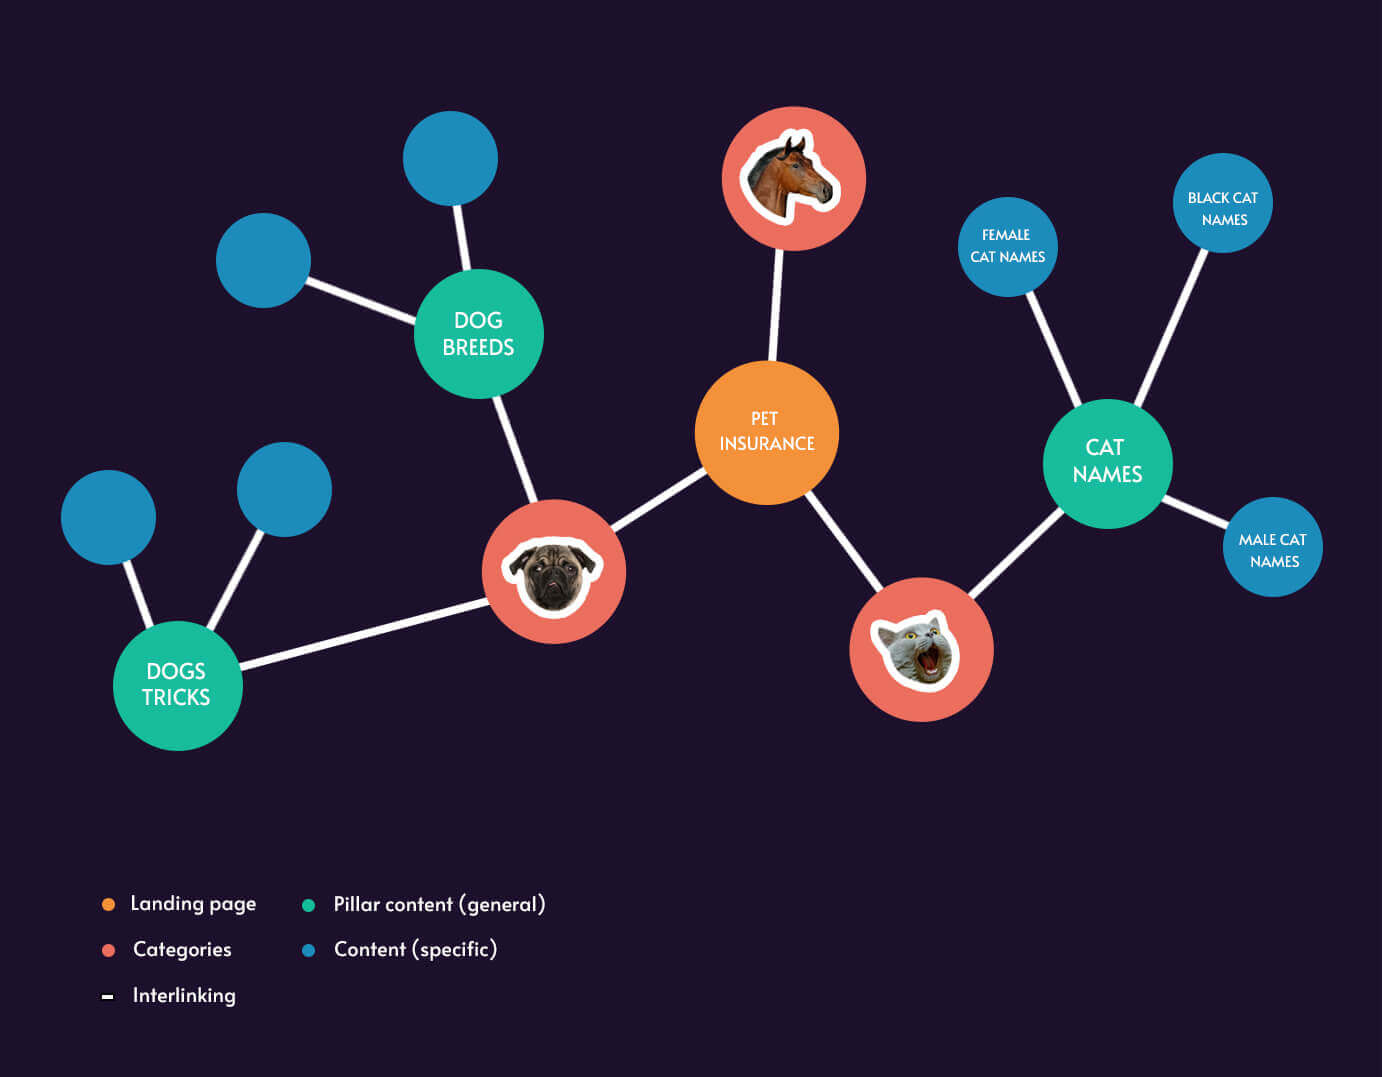 Infographic about content pillars, topic clusters, and their role in preparing a content strategy